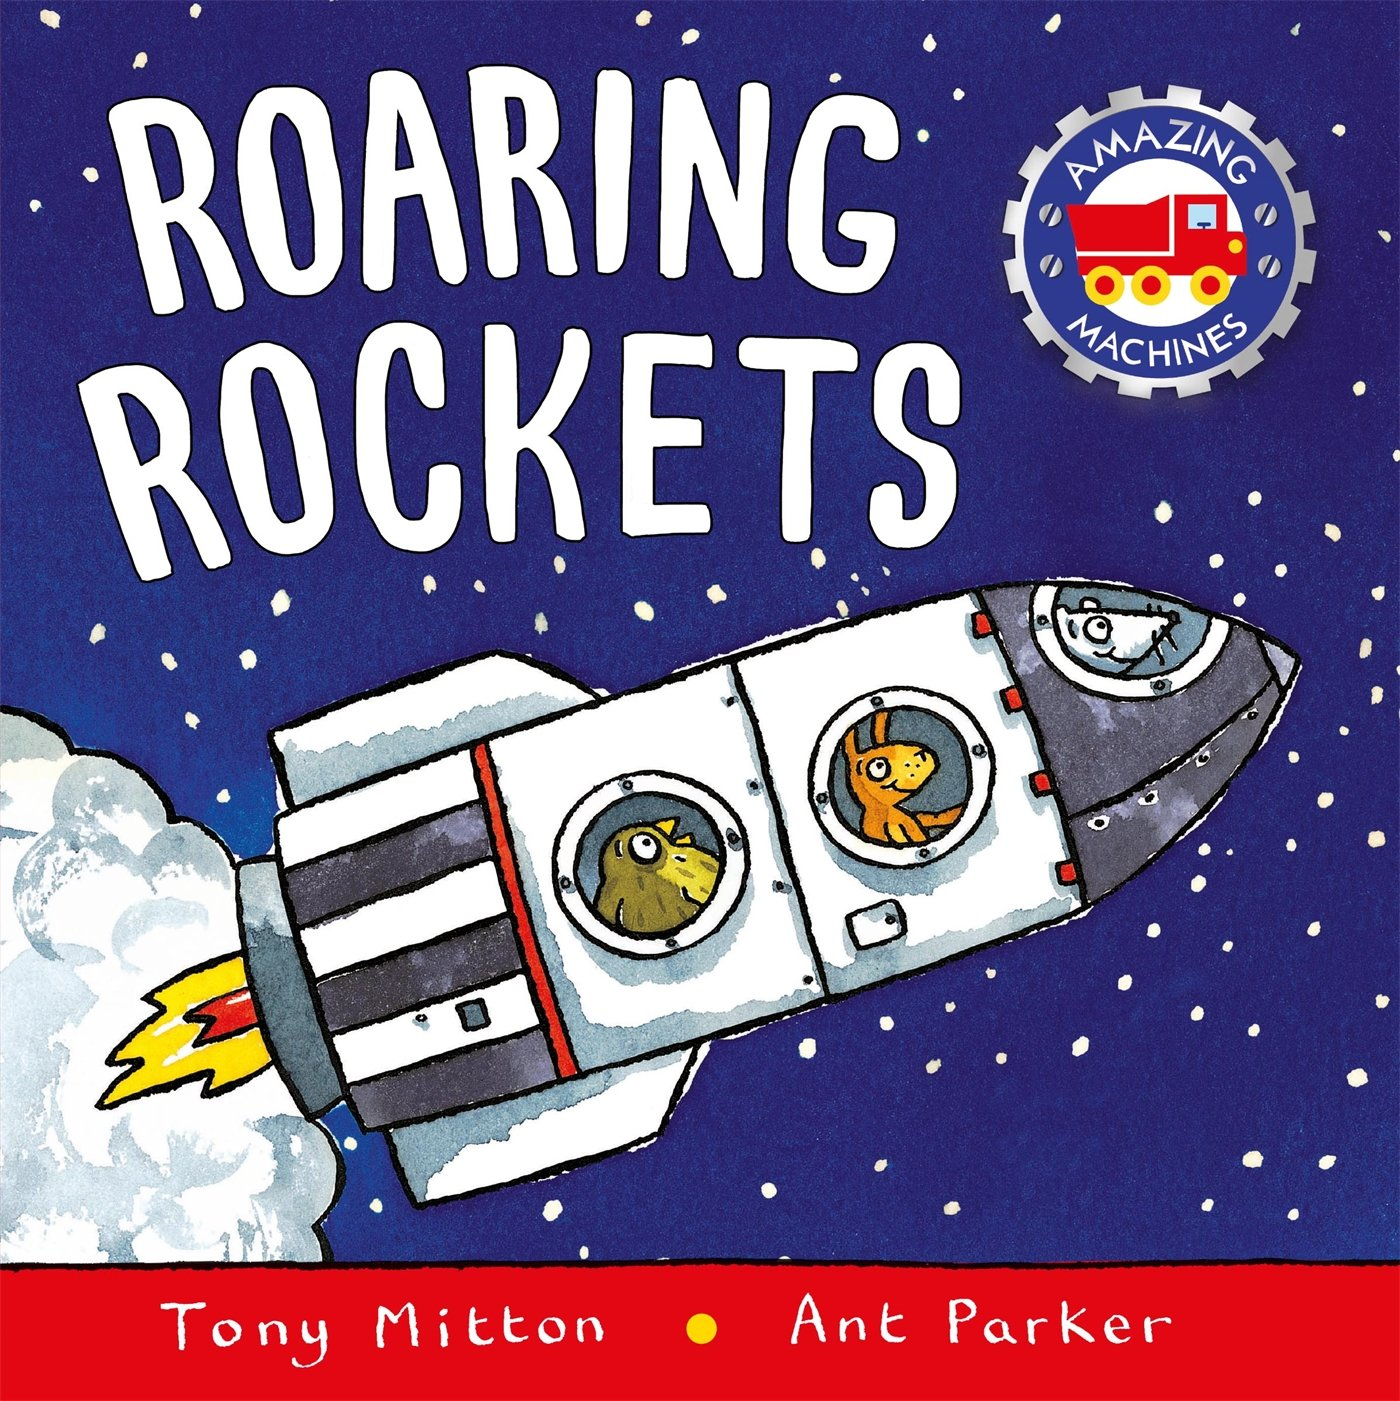 space rocket book - photo #10